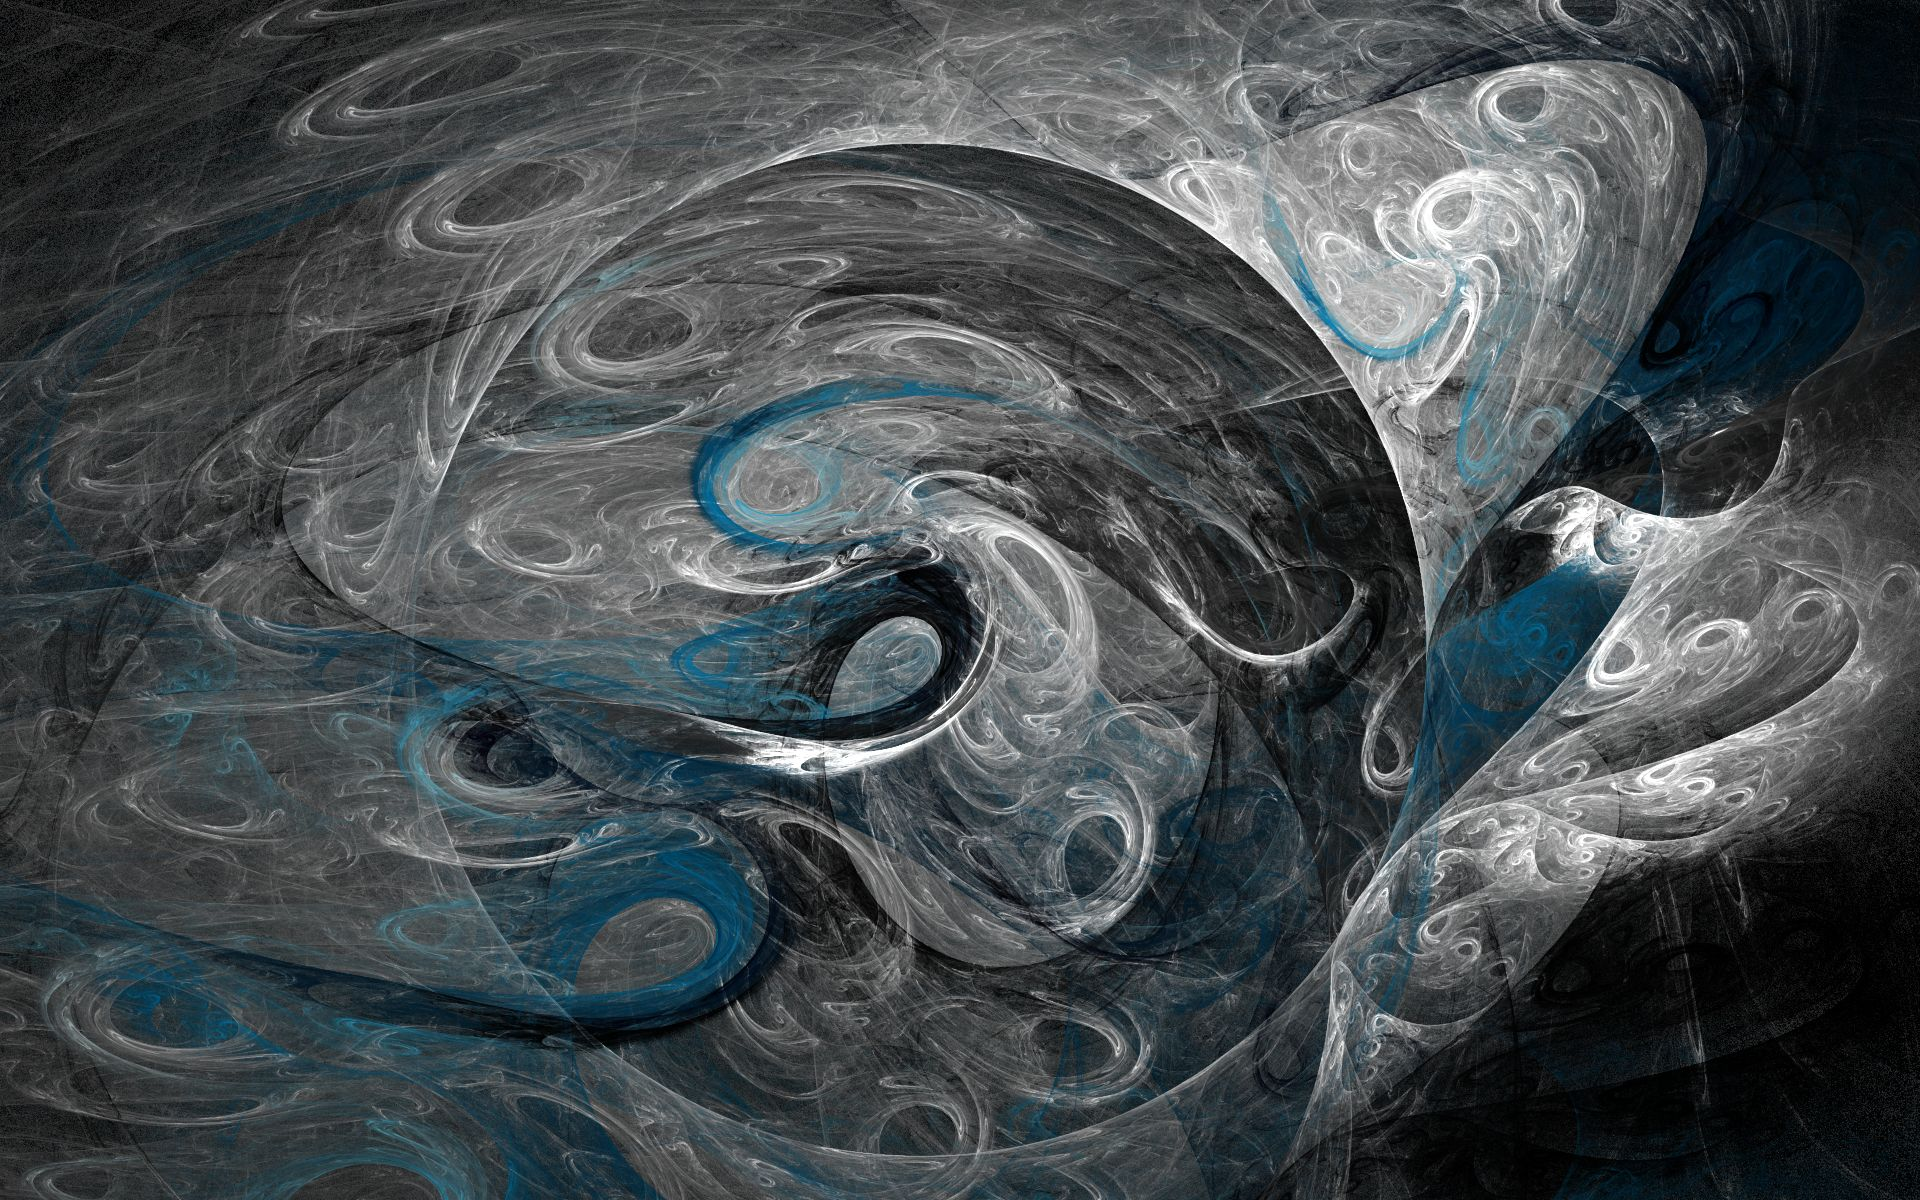 Abstract - Black  - Artistic - Colors - Shapes - Patterns - Shades - Textures - Cgi - Swirls - Abstract Wallpaper